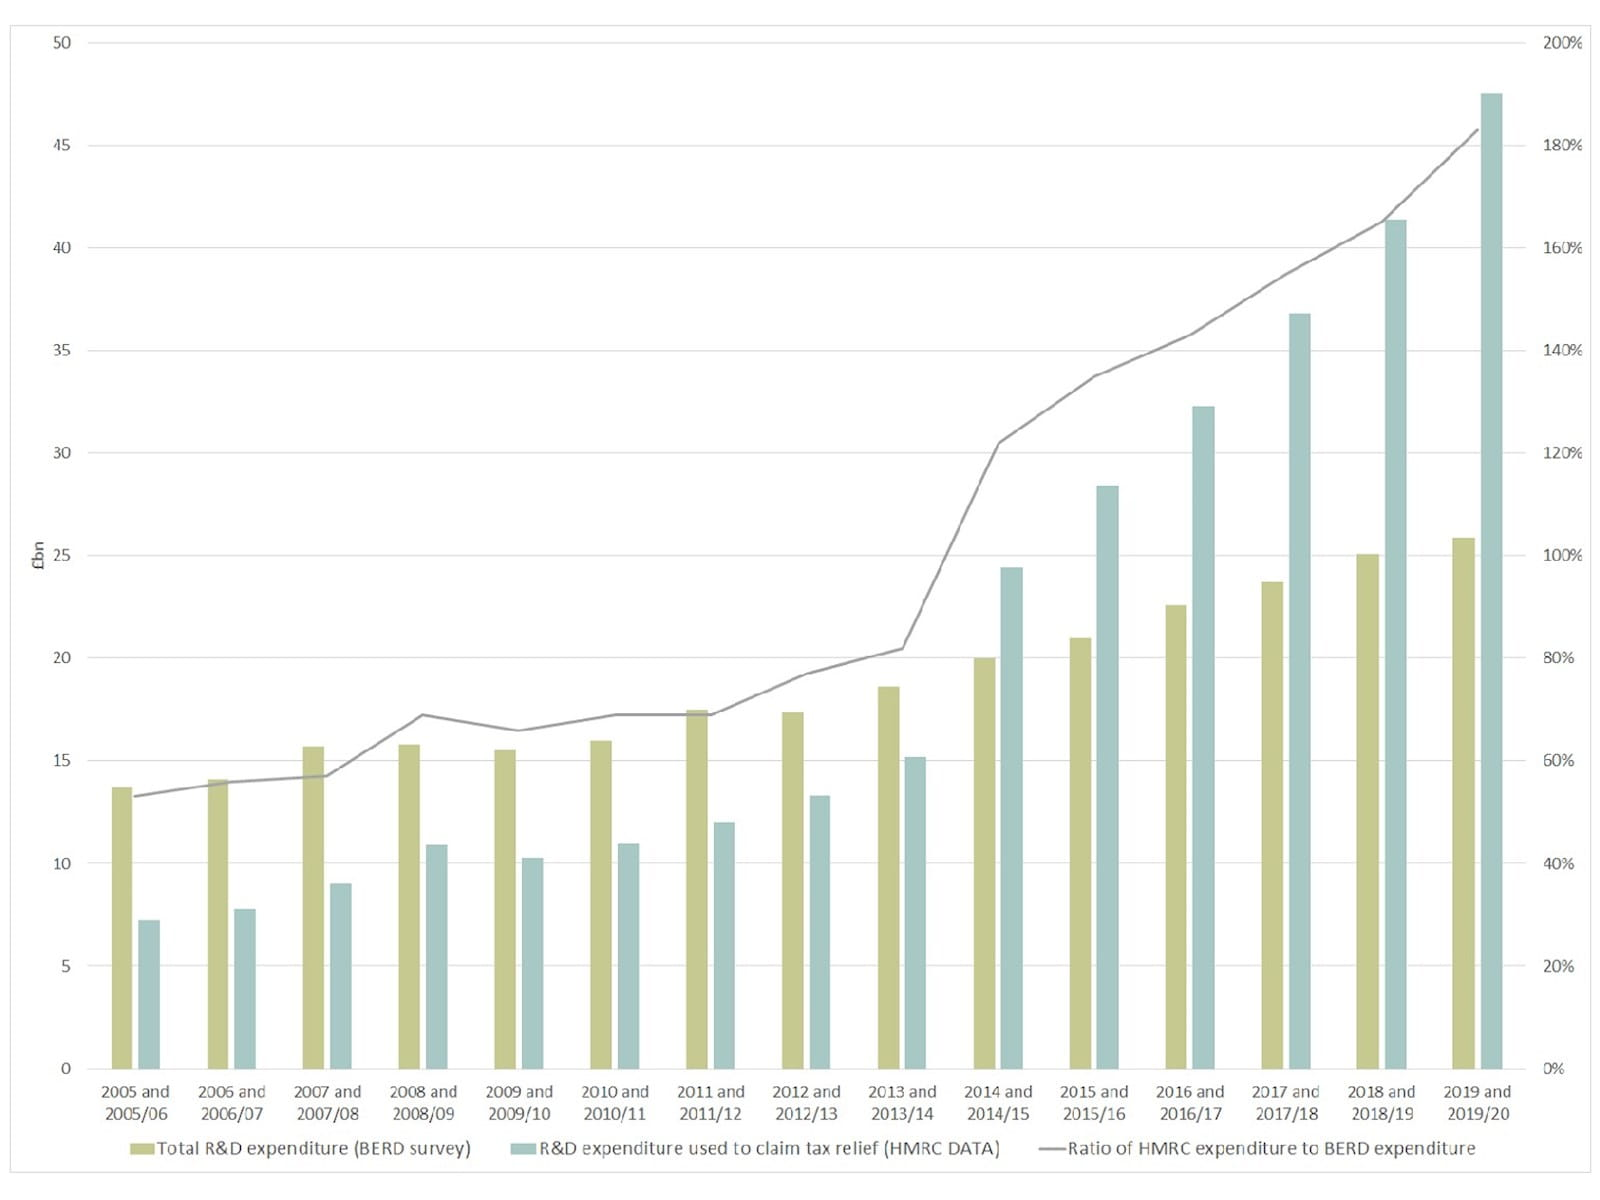 A comparison of R&D expenditure figures as collated by BERD vs those from HMRC's R&D tax relief claims.